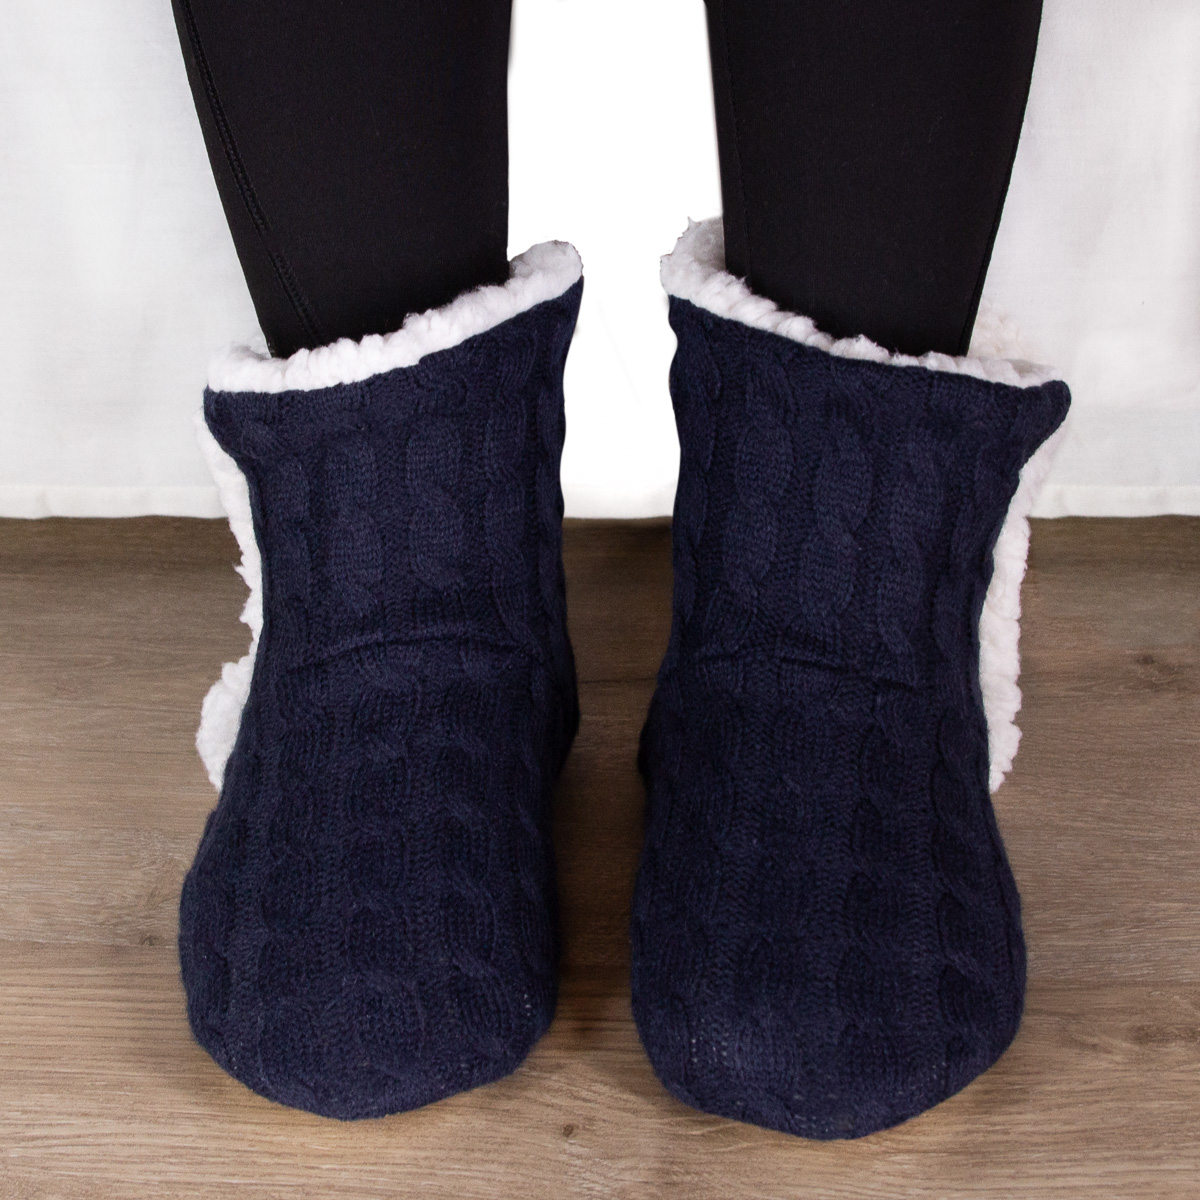 thumbnail 26 - Yelete Women's Cable Knit Slippers House Booties Soft Sherpa Lining Rubber Soles